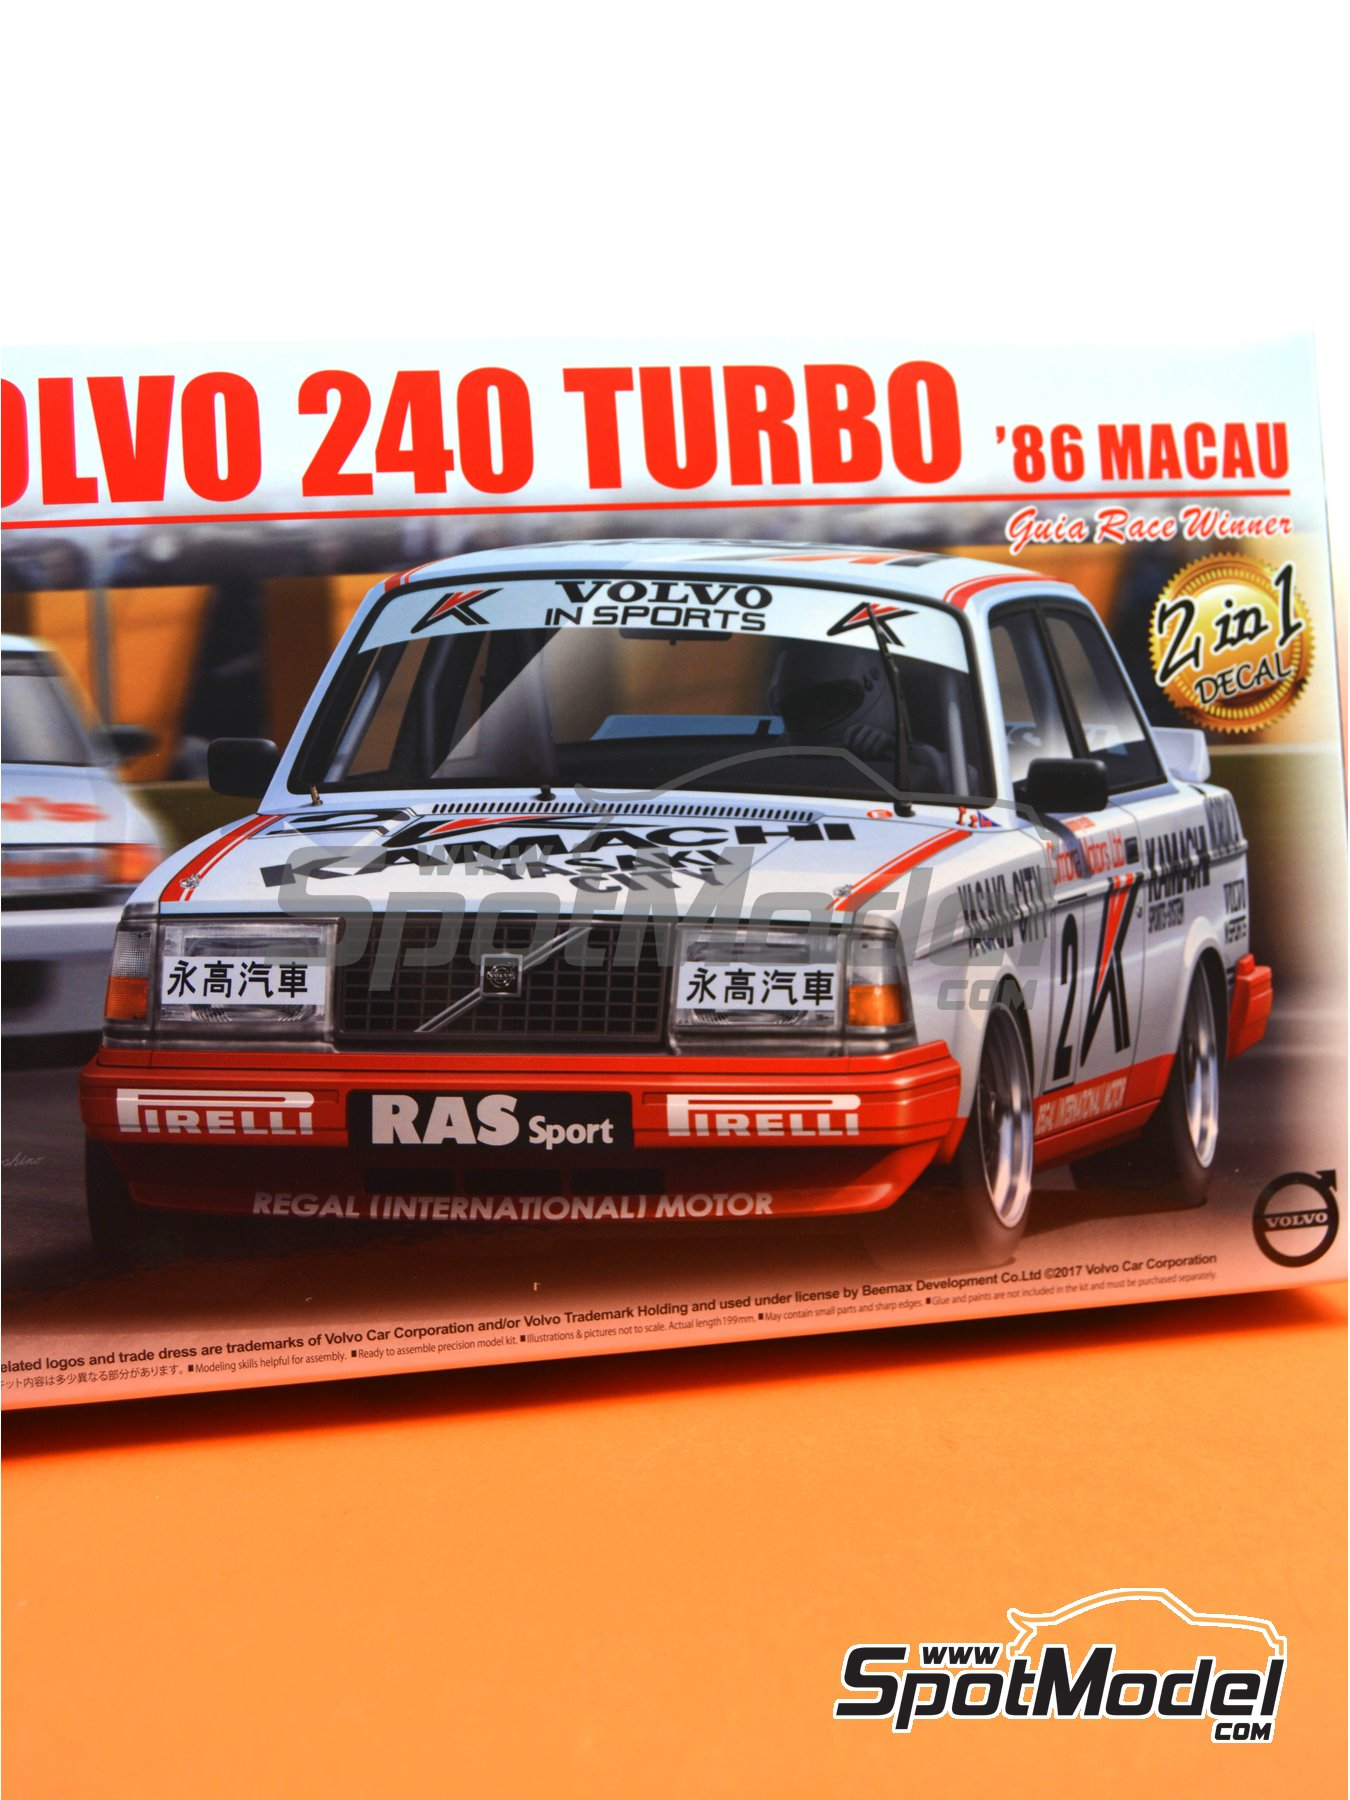 Volvo 240 Turbo Group A Kamachi - Volvo Dealer Team Europe - Inter TEC championship Fuji Speedway, Guia Race of Macau 1985 and 1986 | Model car kit in 1/24 scale manufactured by Beemax Model Kits (ref. B24012) image